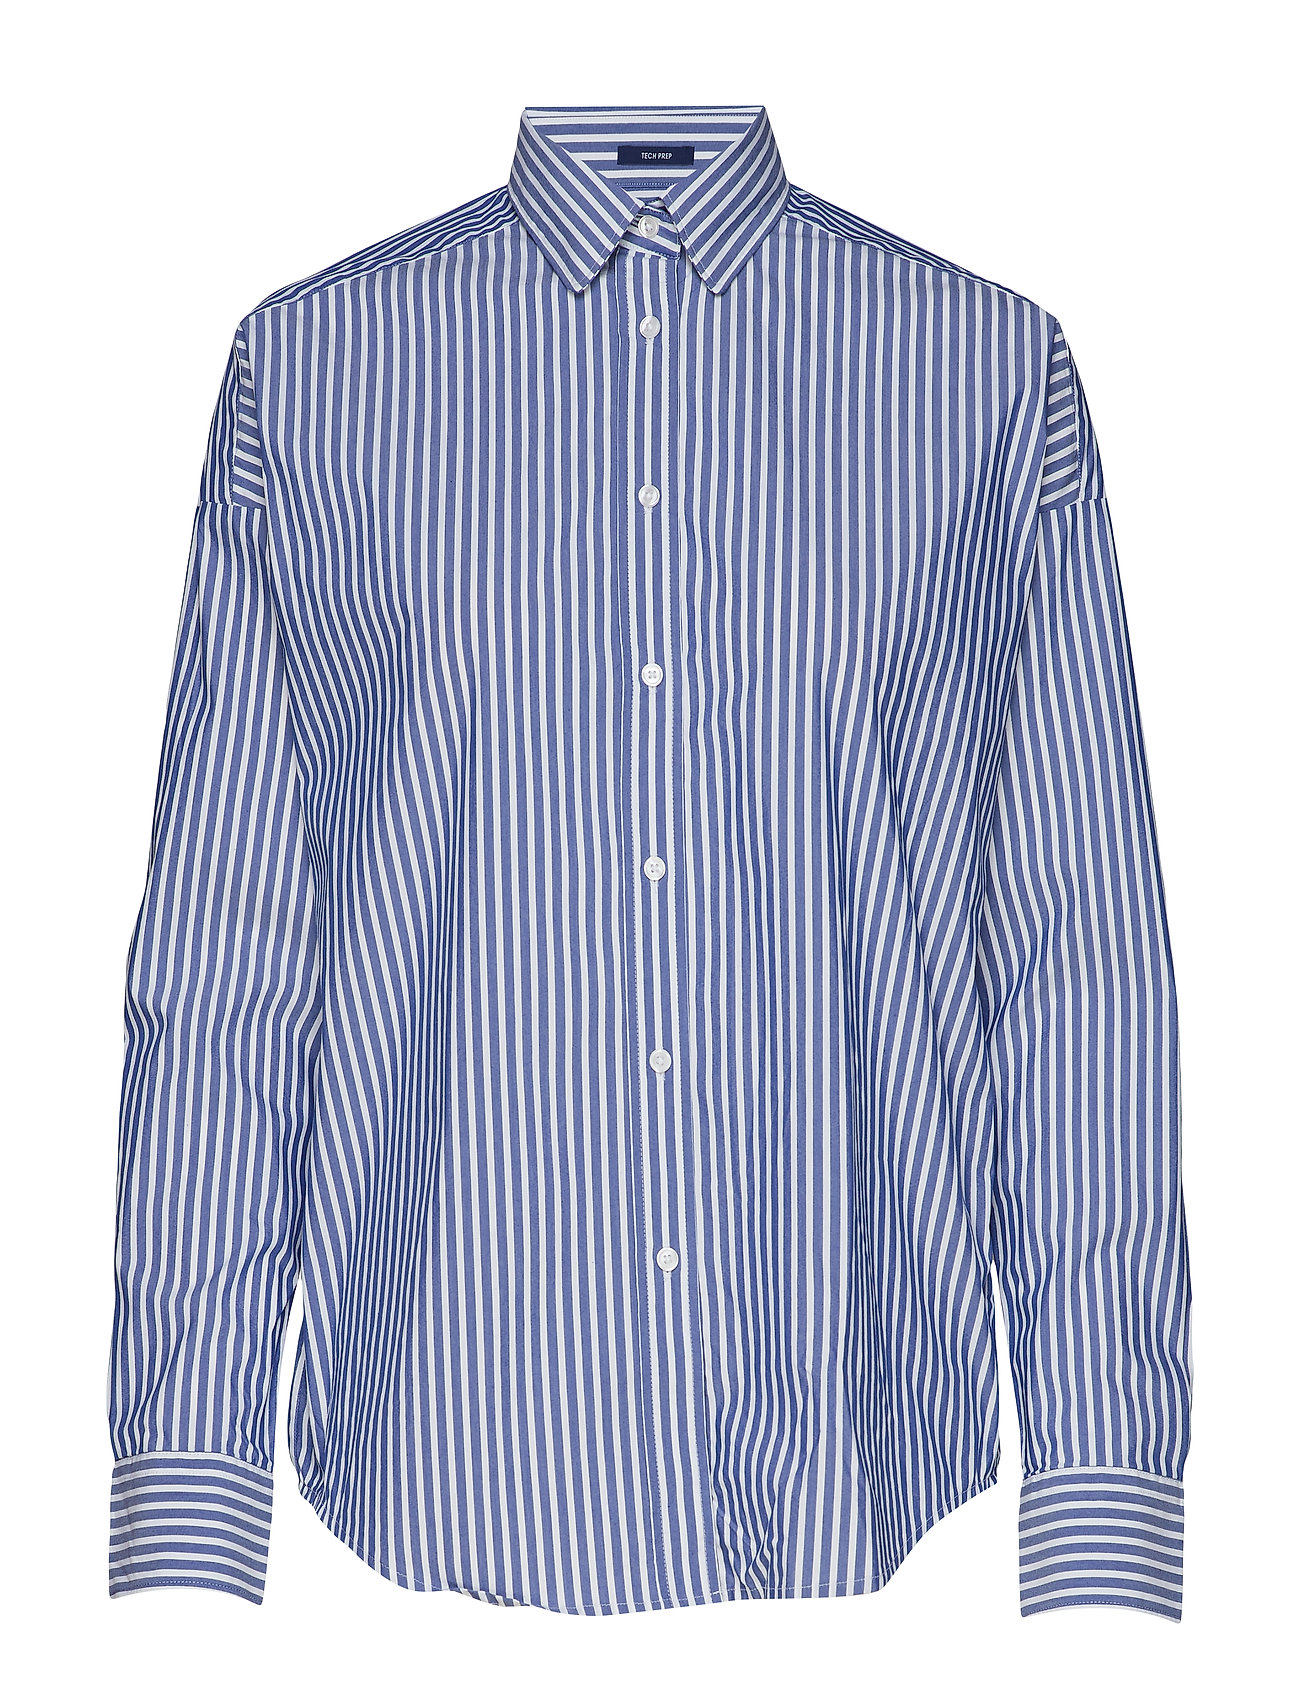 GANT D1. TP BC STRIPED OVERSIZED SHIRT - COLLEGE BLUE